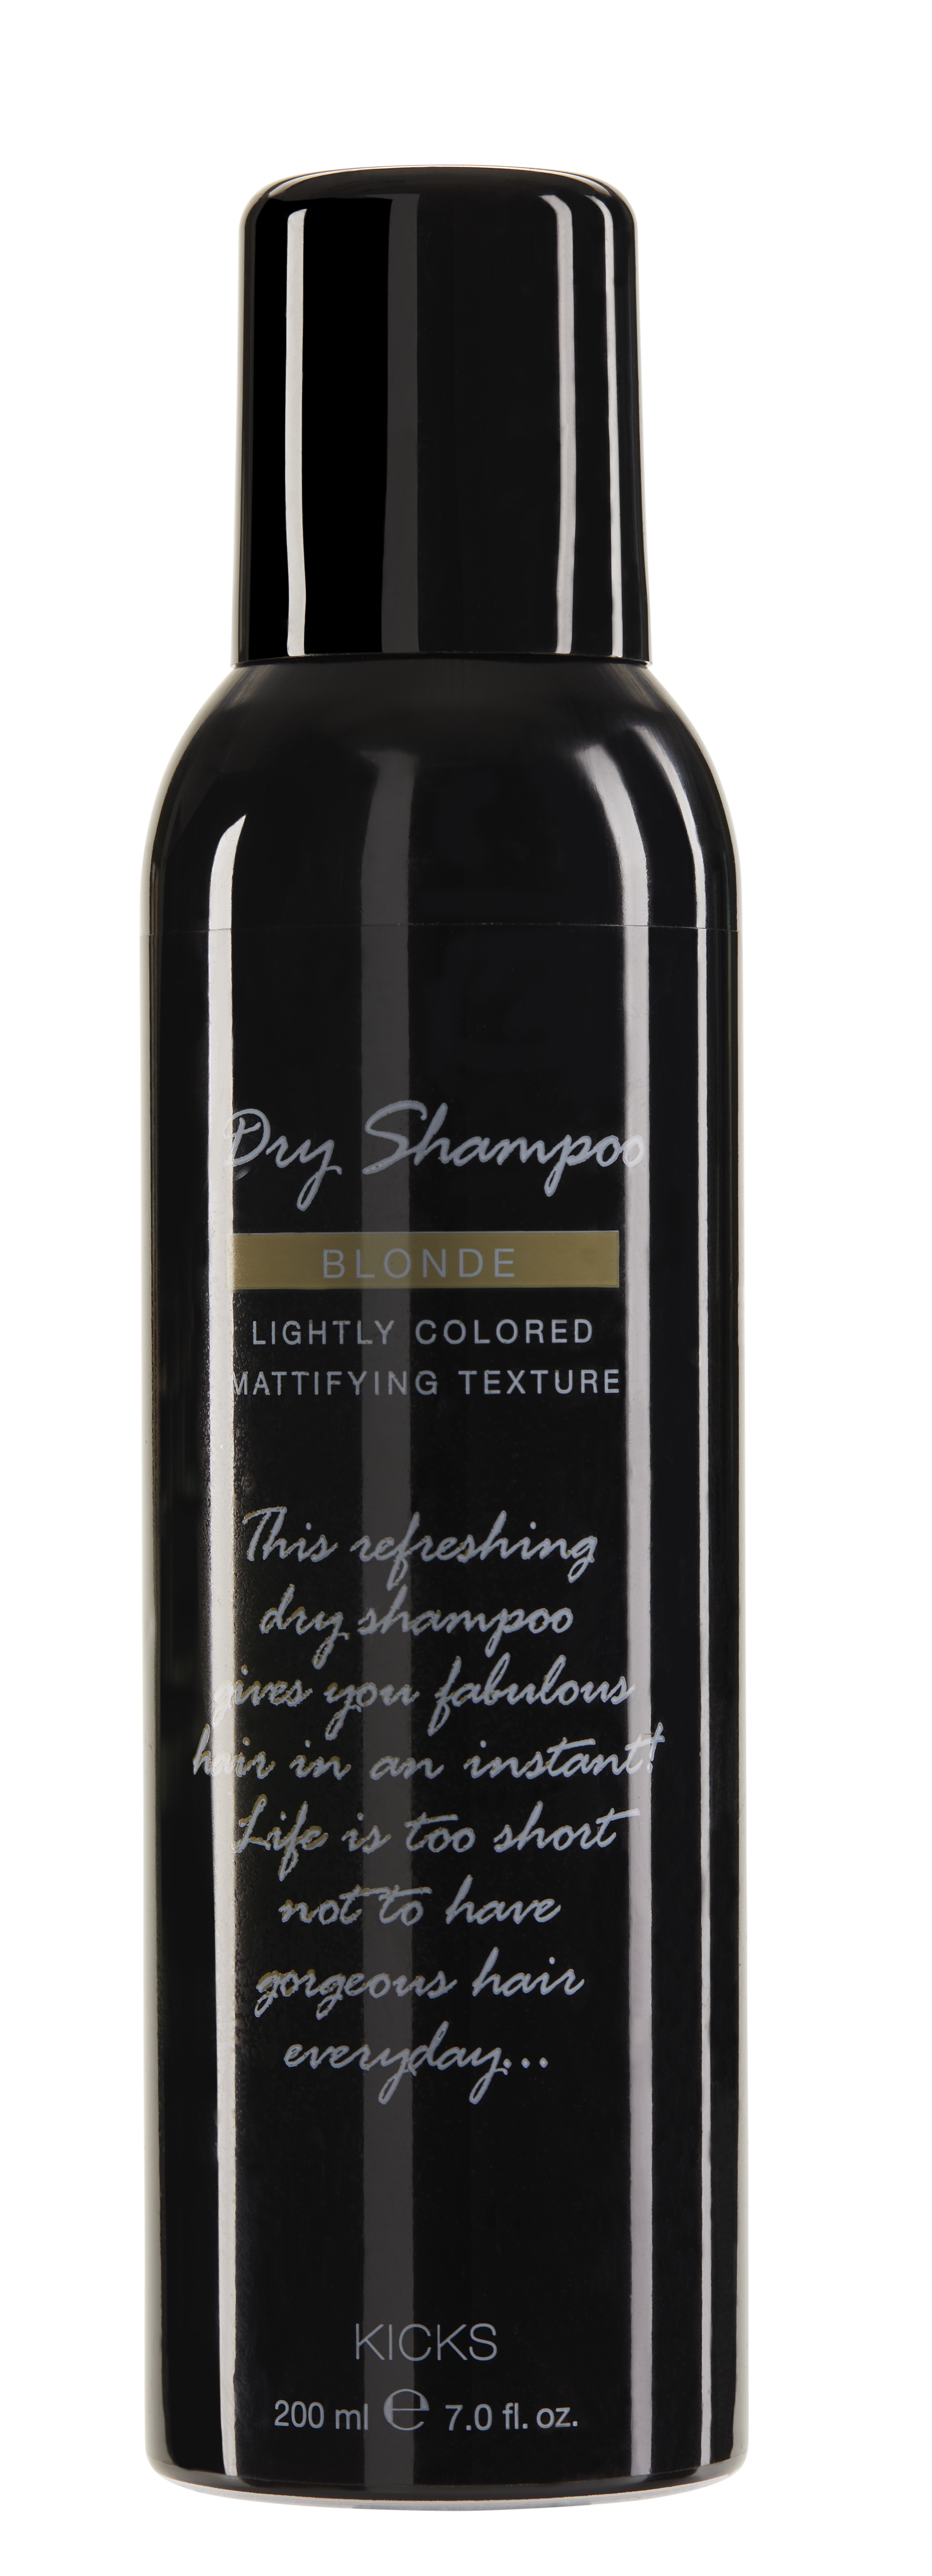 Dry Shampoo Blonde Blonde 200 ml